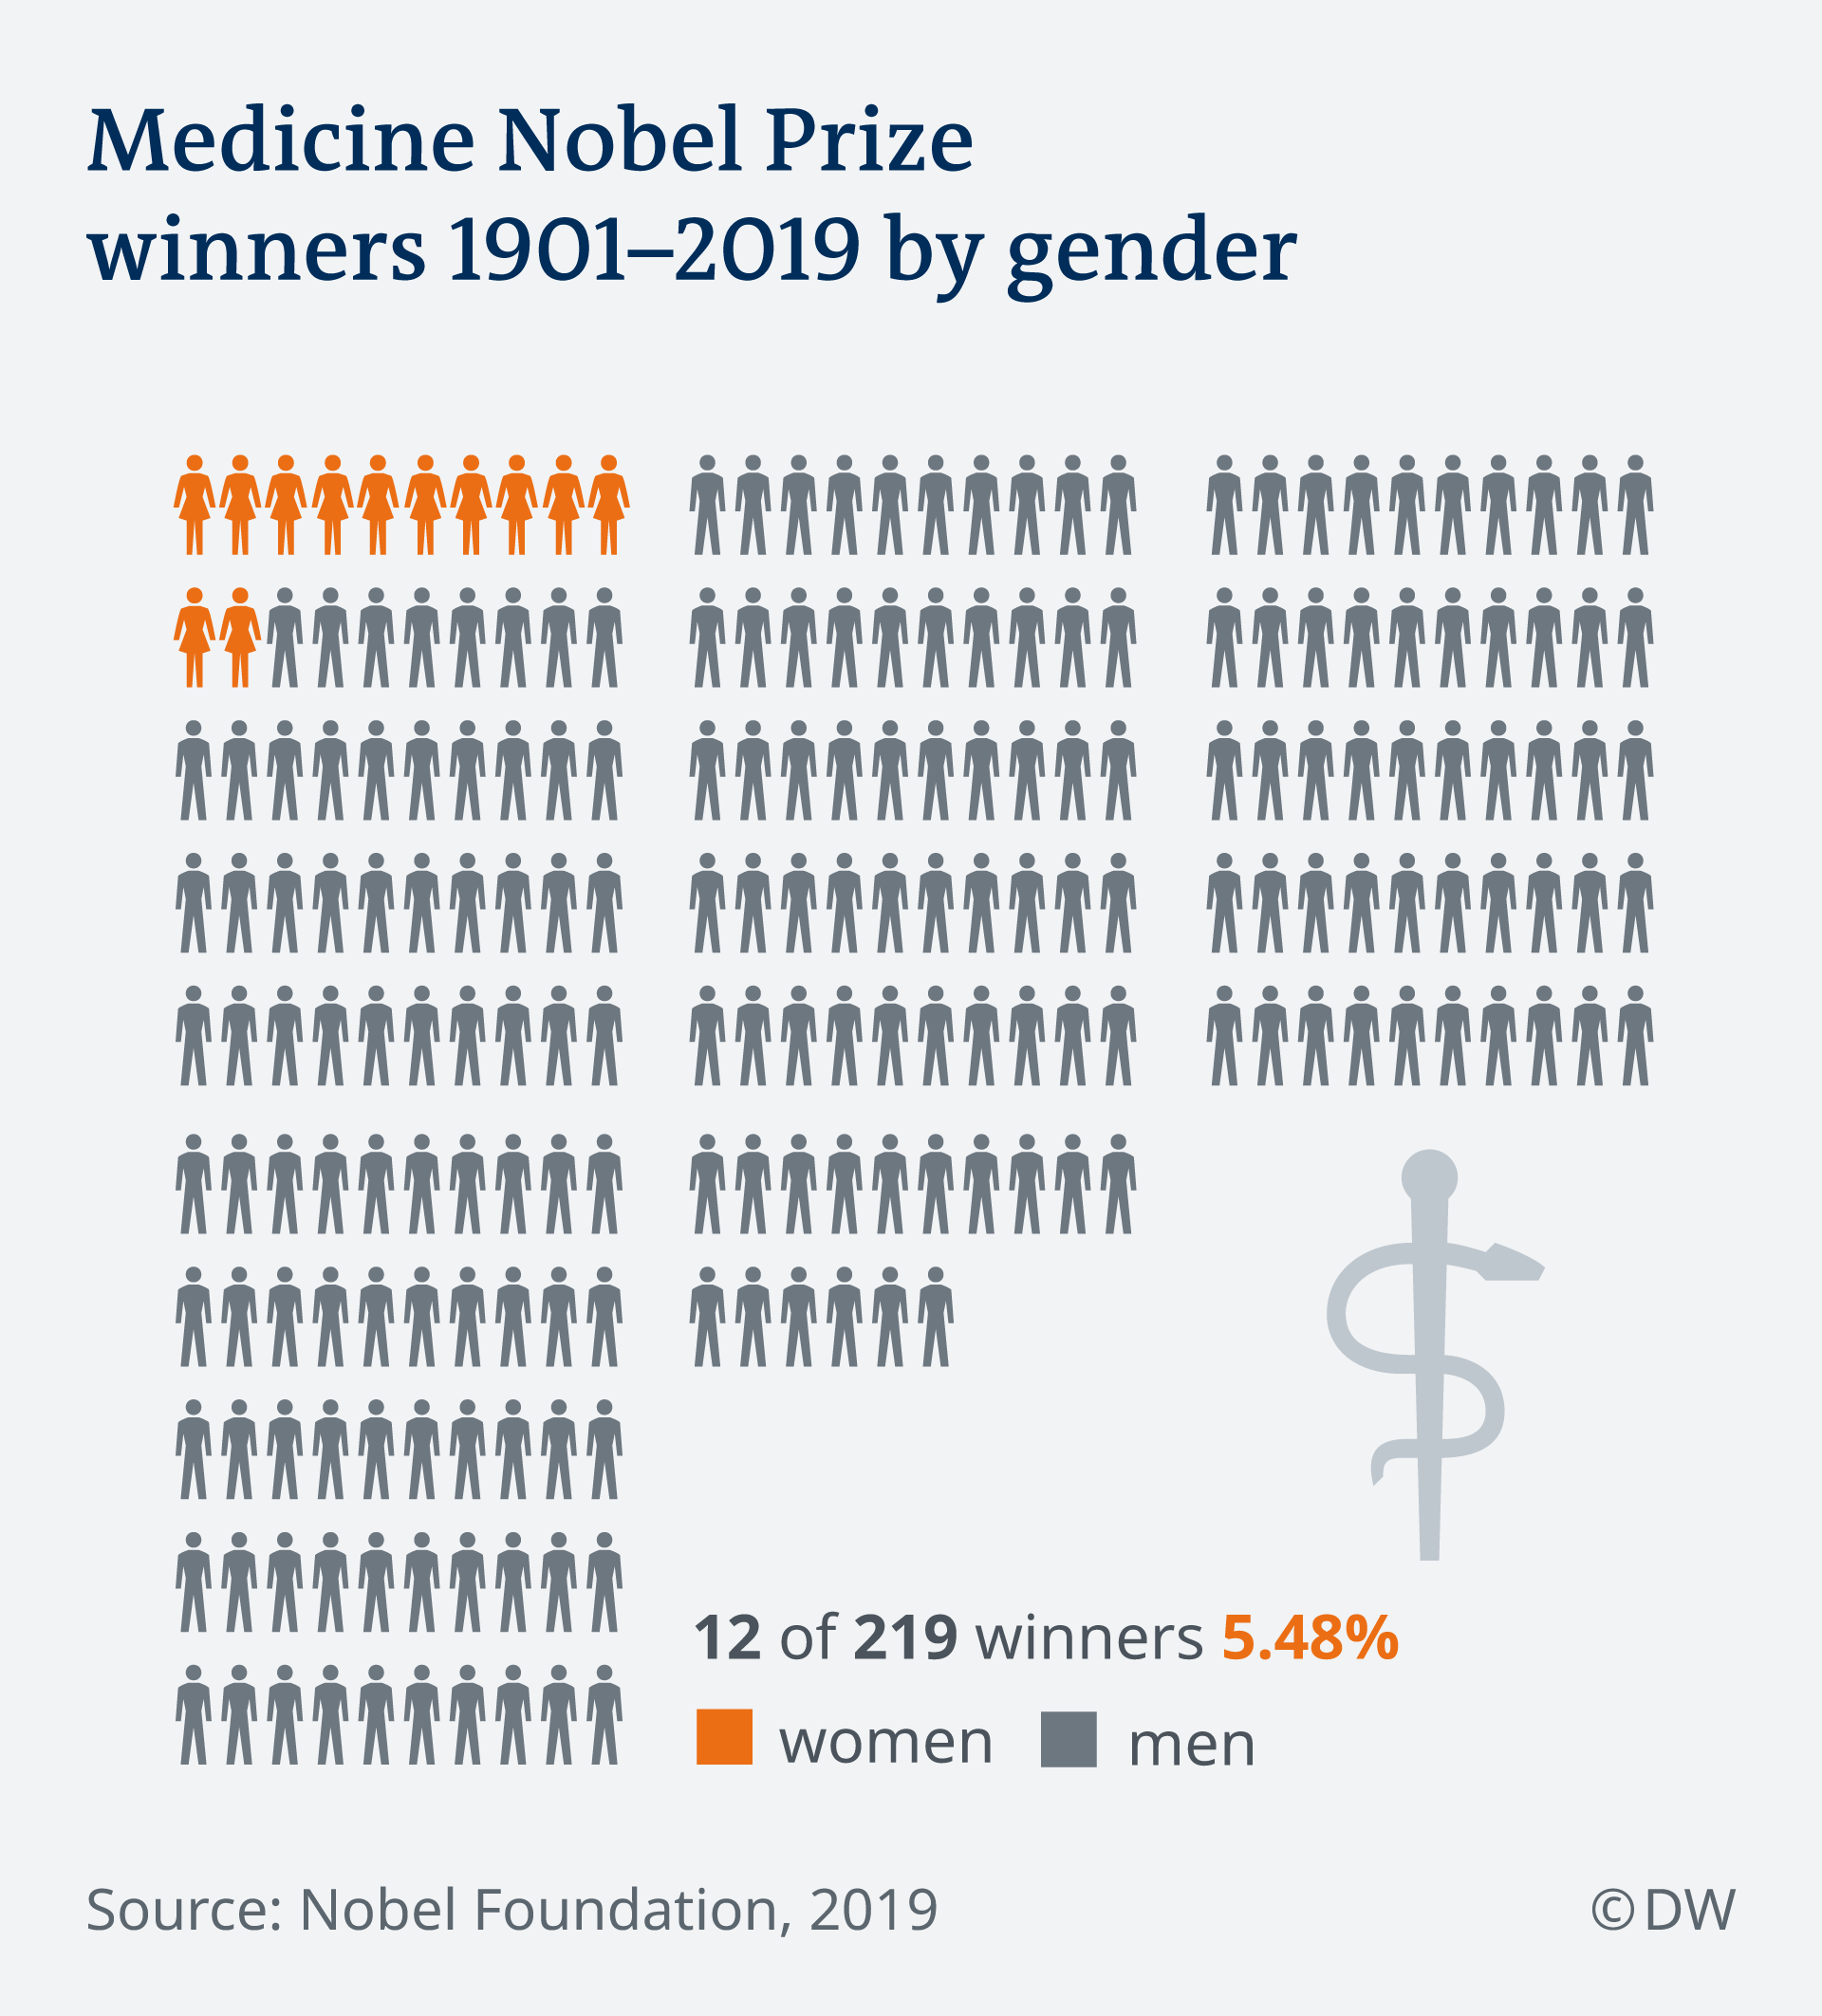 Infographic showing Medicine Nobel Prize winners 1901-2019 by gender